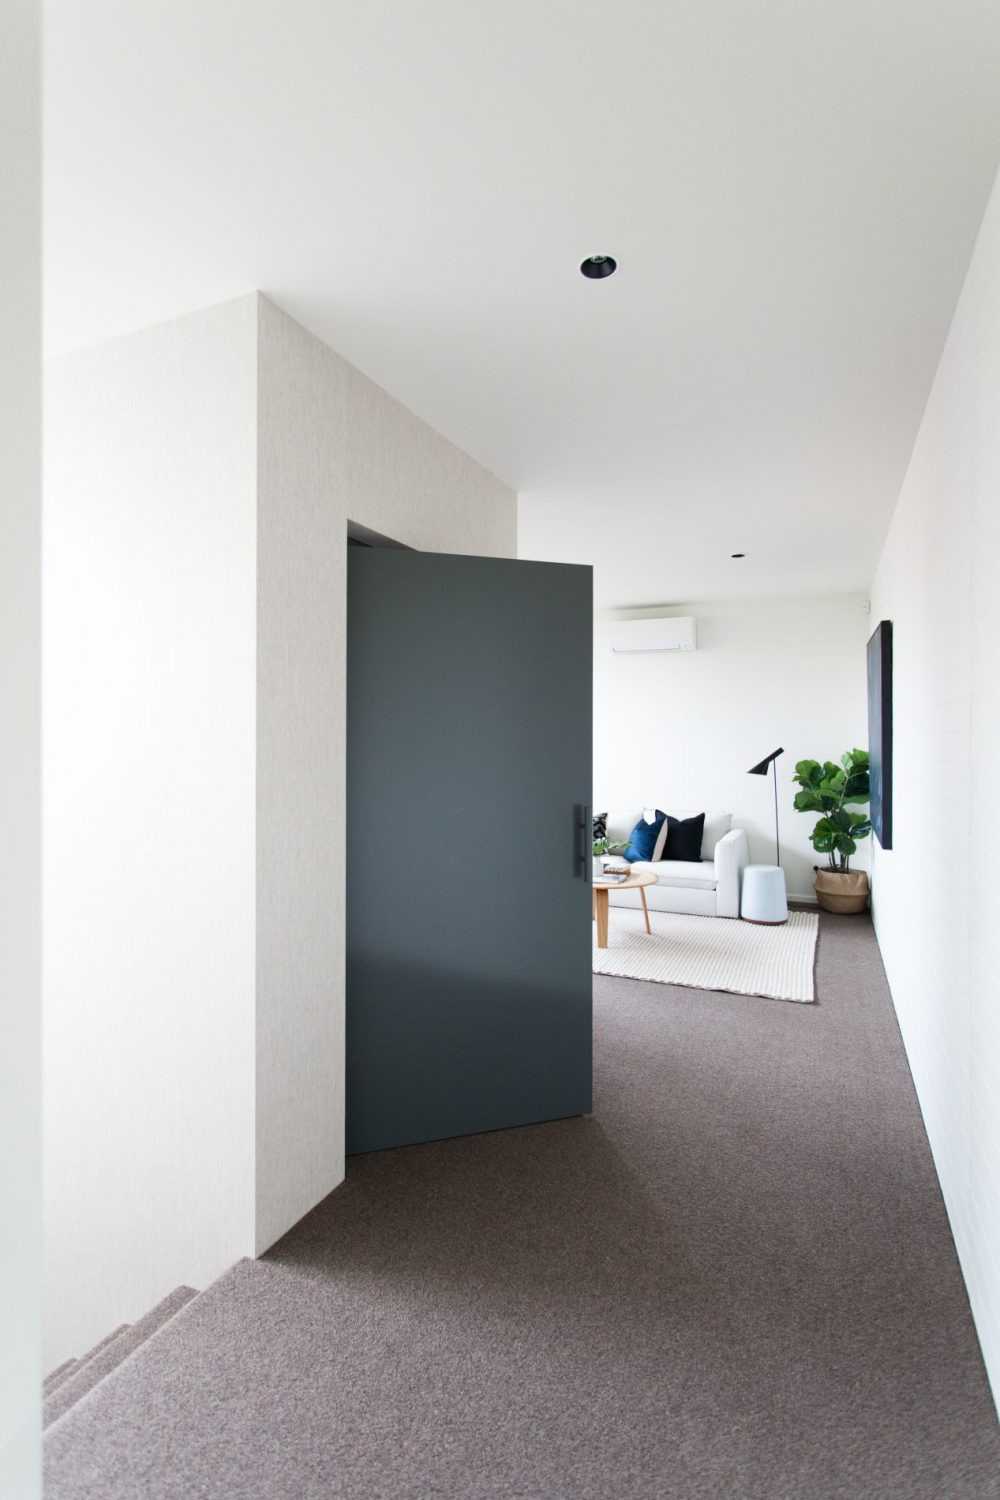 classic home elevator design - melbourne home lifts - platinum elevators